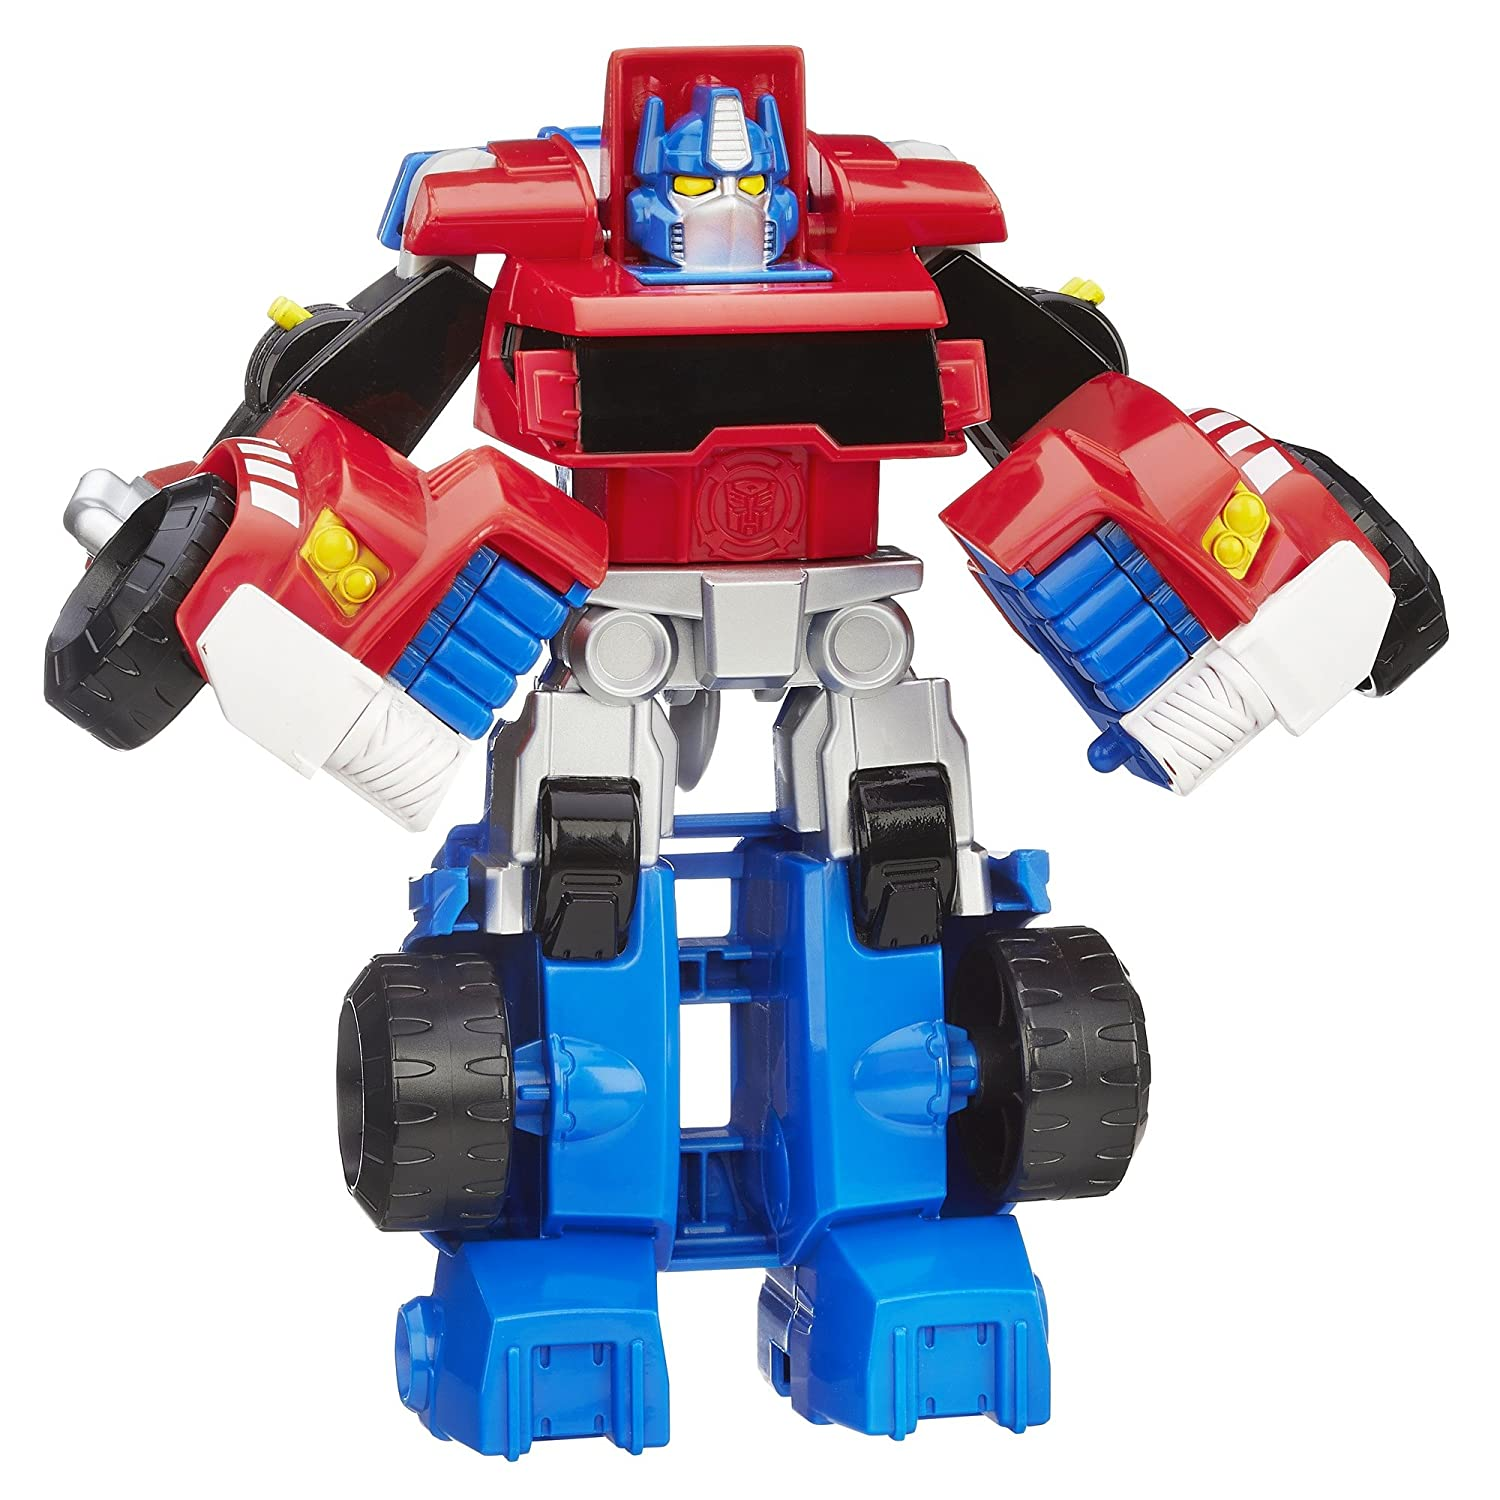 Playskool Heroes Transformers Rescue Bots Optimus Prime Action Figure, Ages 3-7 (Amazon Exclusive) Hasbro - Import B1835F01